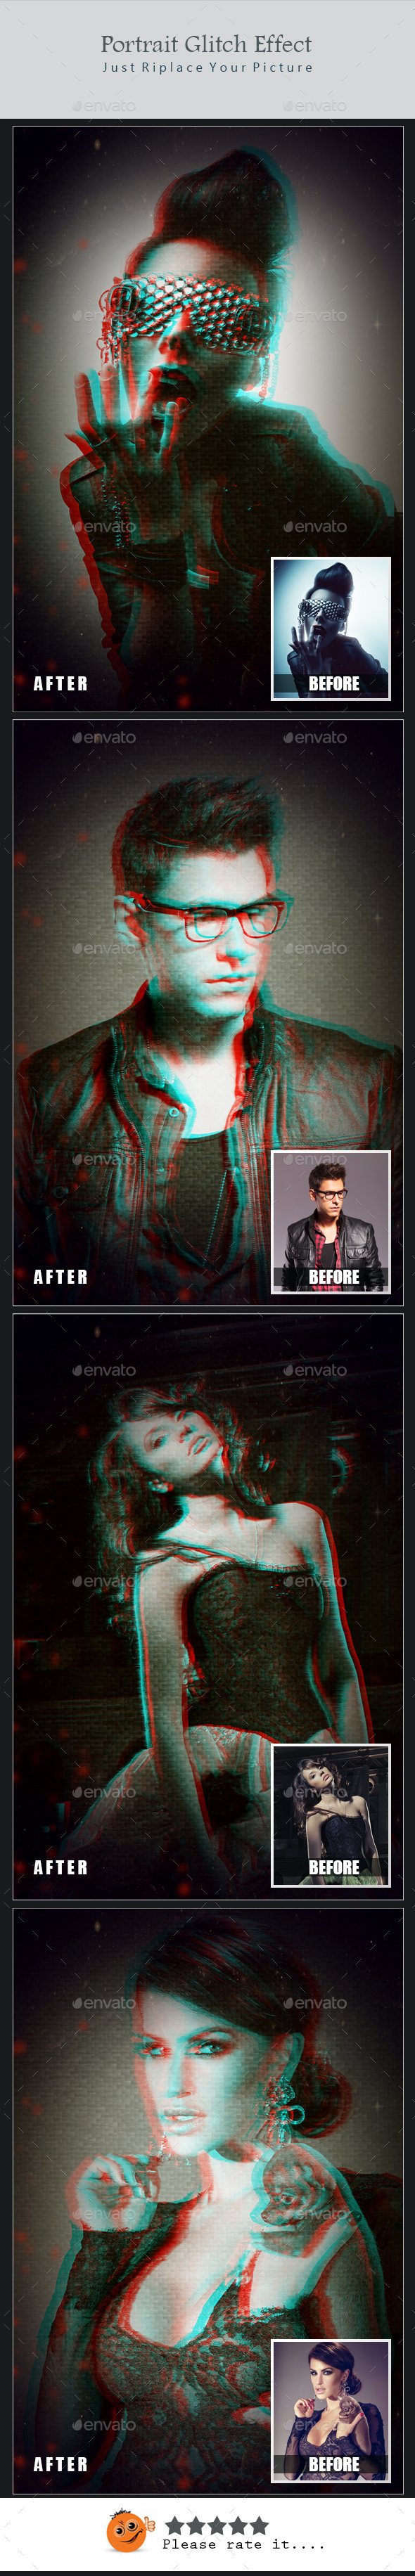 Potrait Glitch Effect - Photo Templates Graphics